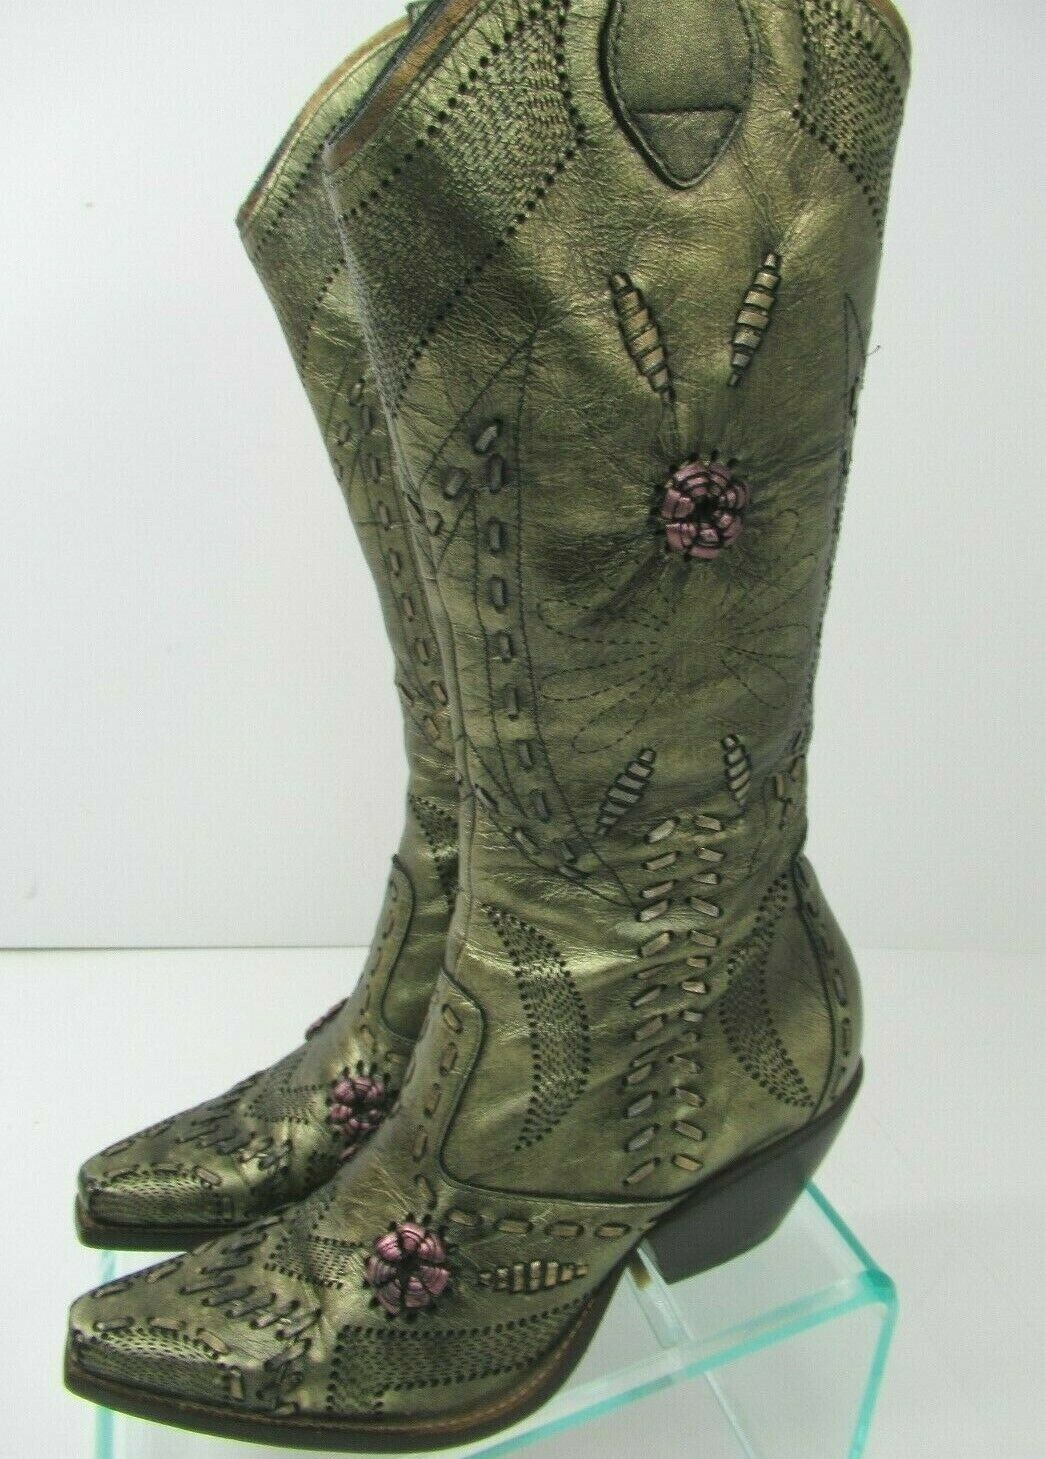 BCBGirls Womens Cowboy Boots Zip Embellished Metallic Green Leather 6B - SS808